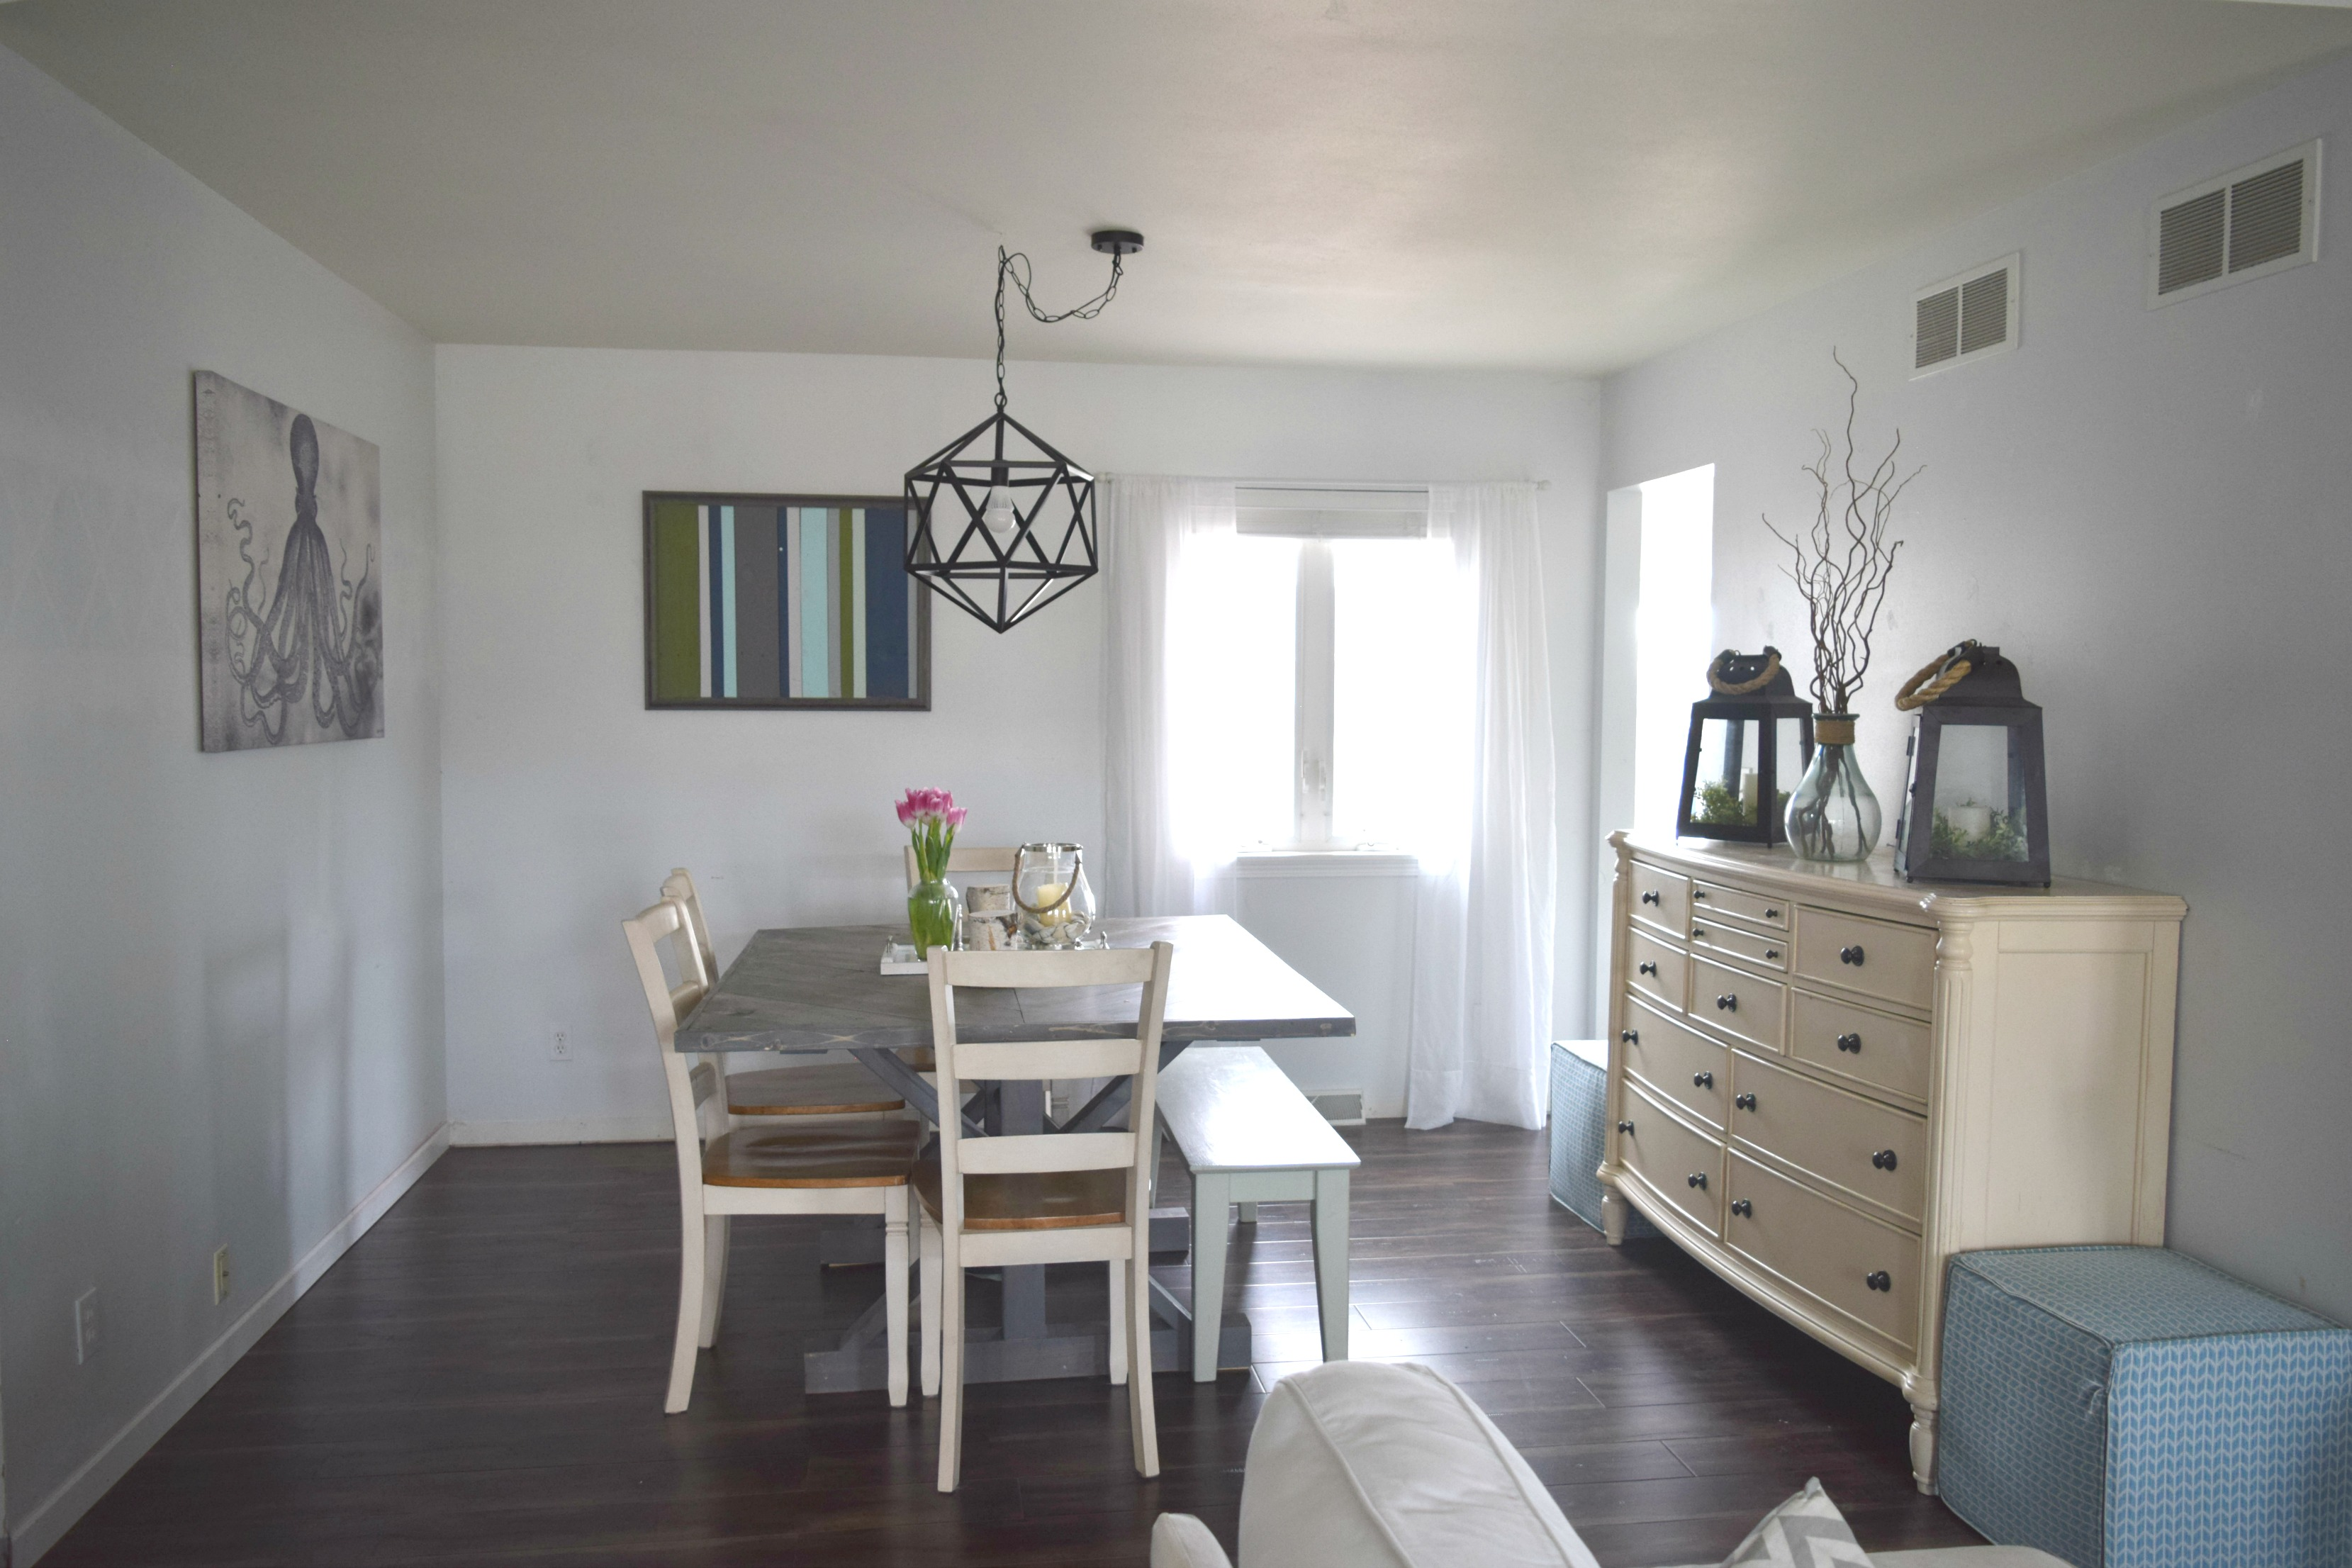 Simple dining room makeover low cost and easy updates • Our